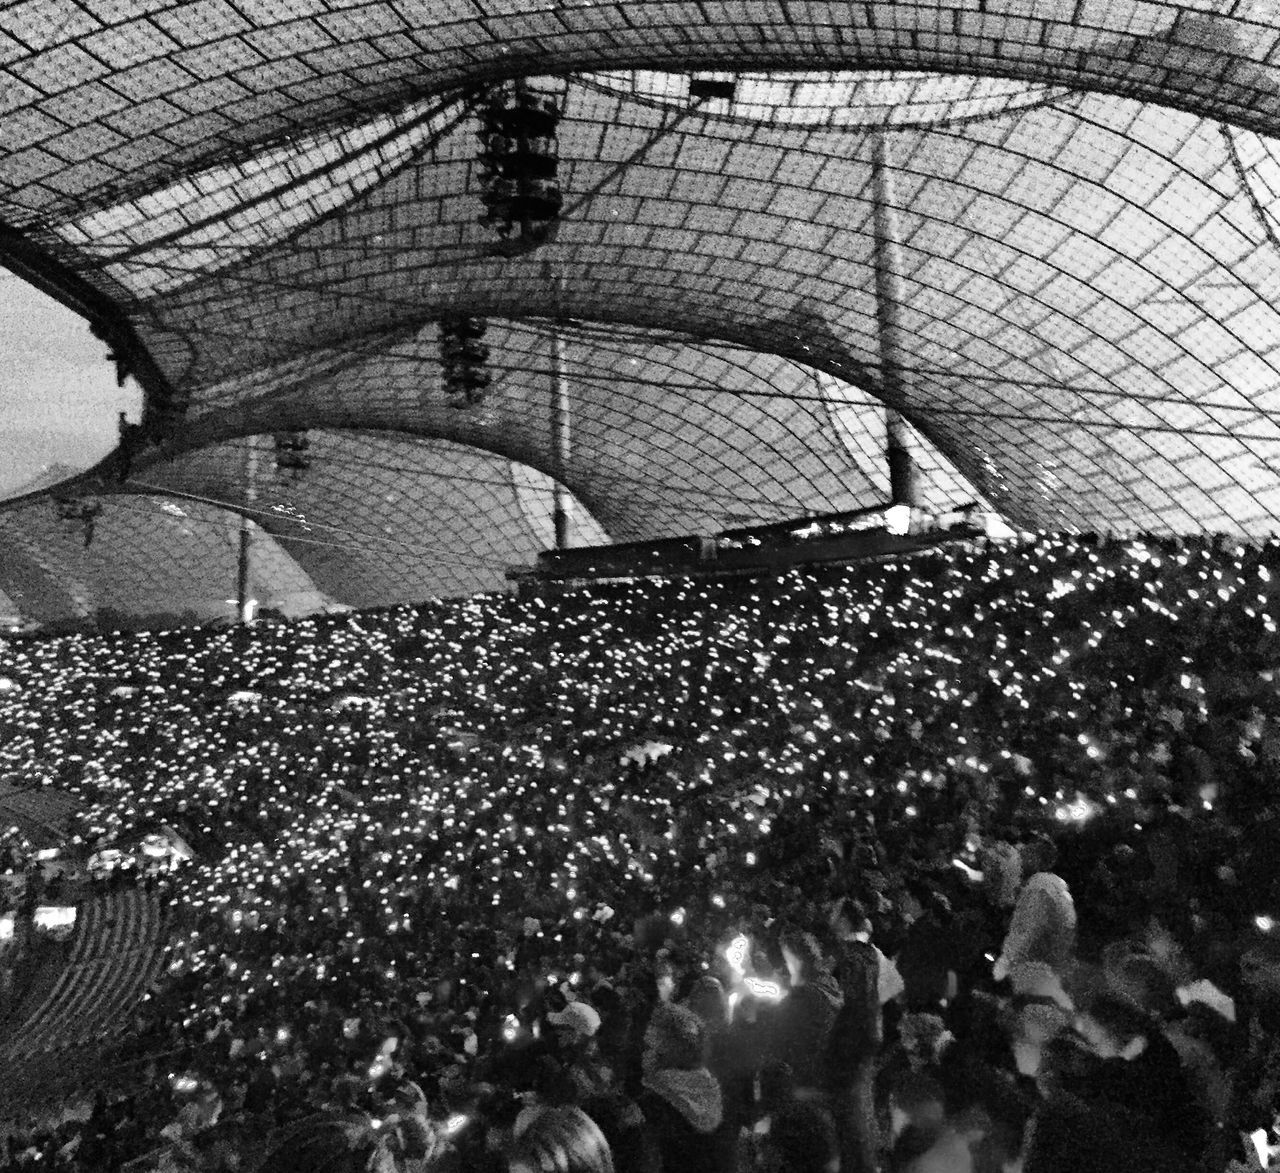 coldplay at munich Concert Concert Photography Event Munich Munich Architecture Coldplay Coldplay Concert  Blackandwhite Blackandwhite Photography Black And White Black And White Photography Tadaa Community Olympiastadion Emotions People People And Places